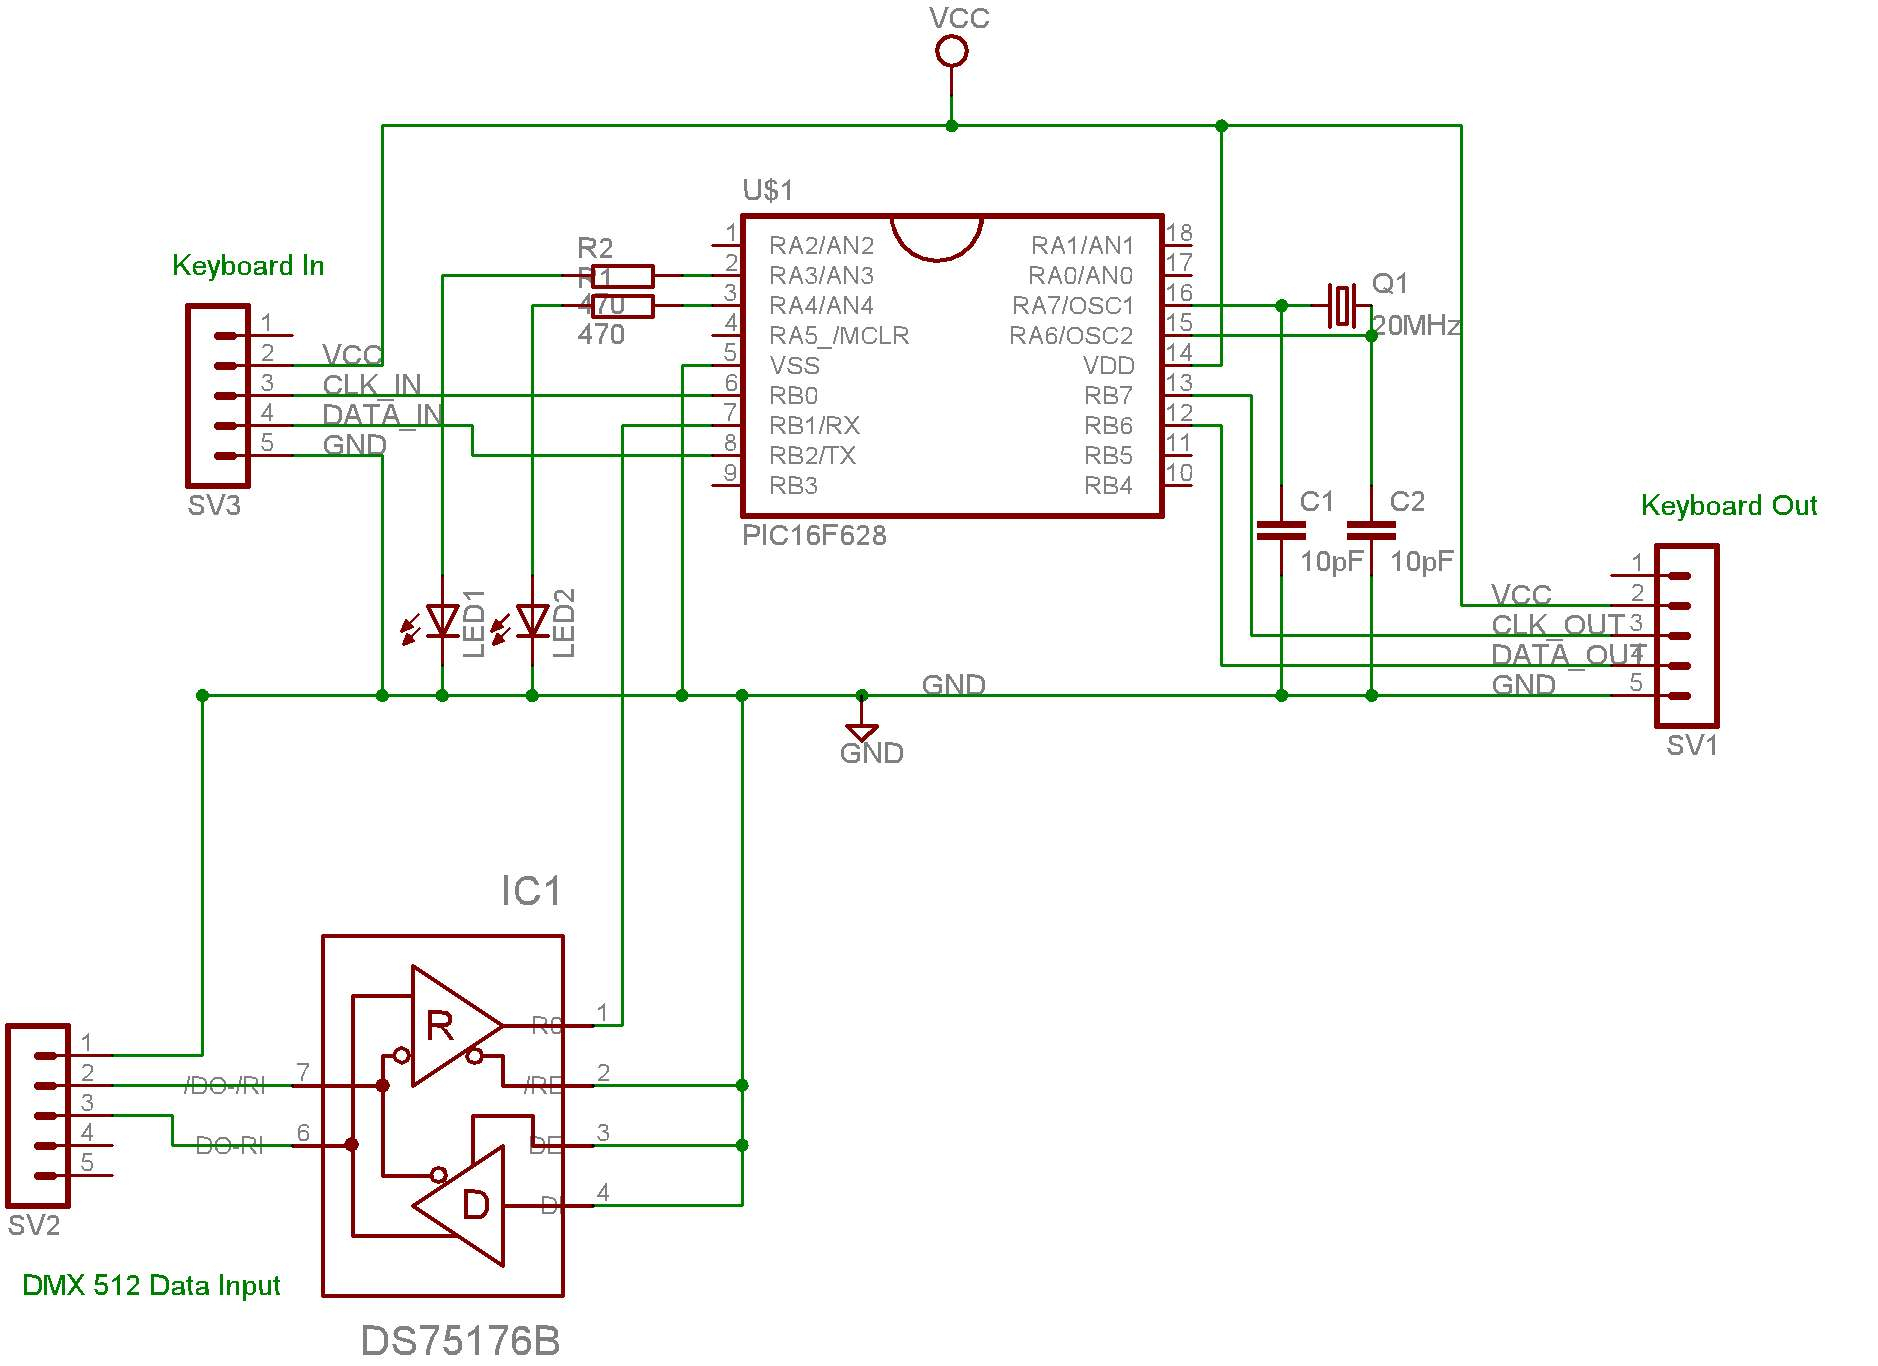 Usb Wiring Diagram Computer | Wiring Diagram - Wiring Diagram Converting 16 Pin Data Connection For 2010 Vw To Usb Connection For Pc